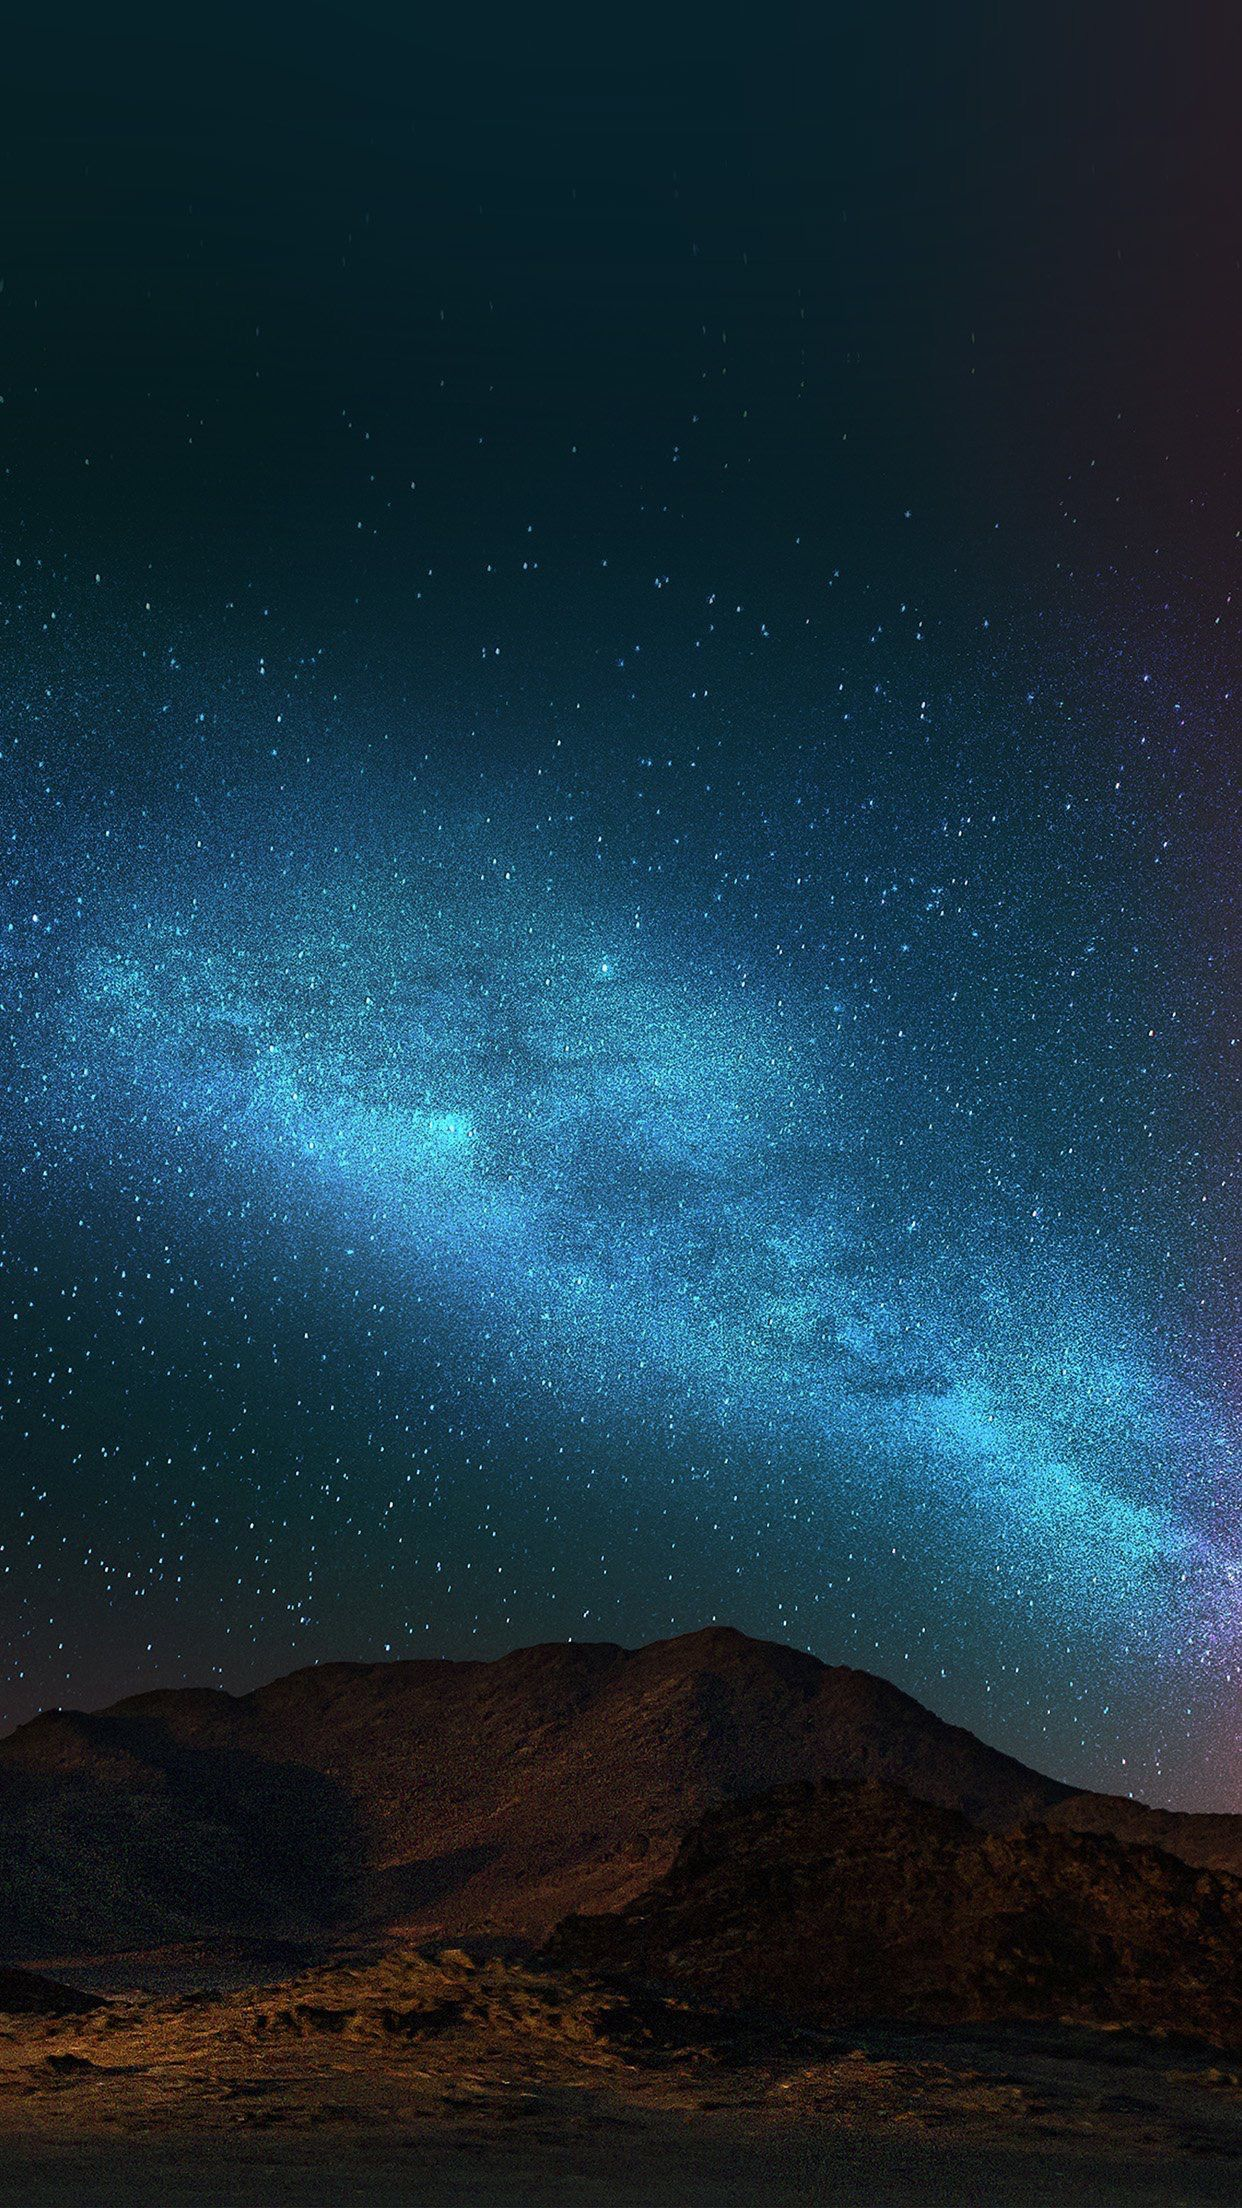 35 Hd Space Iphone Wallpapers Best Planet Backgrounds For Iphone